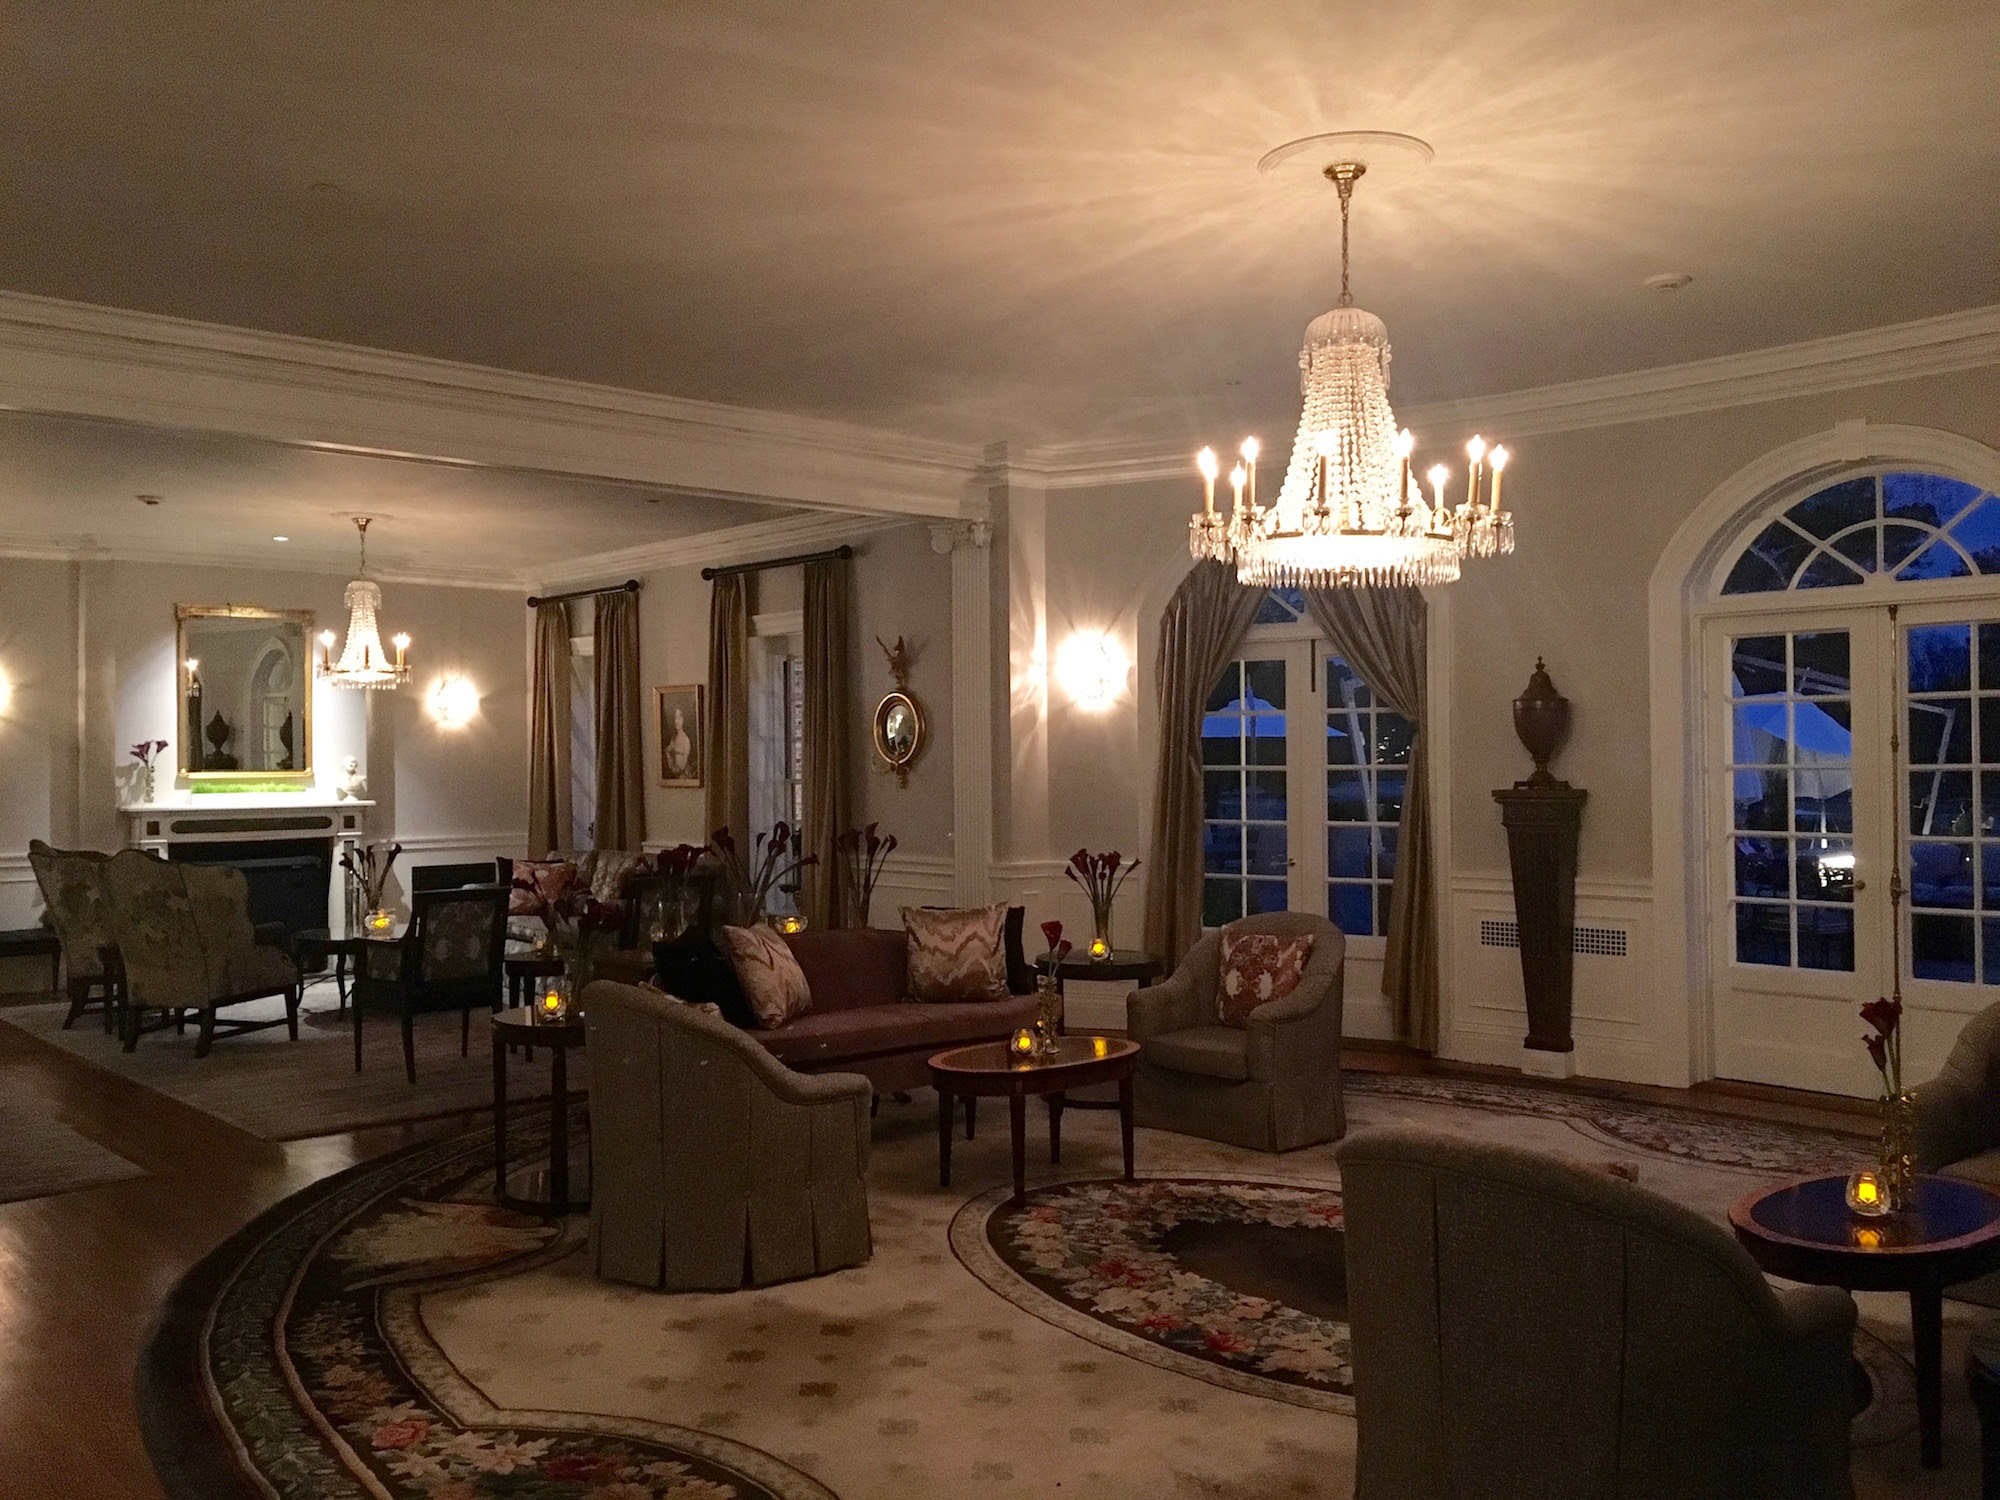 Fine Dining Wine And History At Williamsburg Inn Savor Virginia